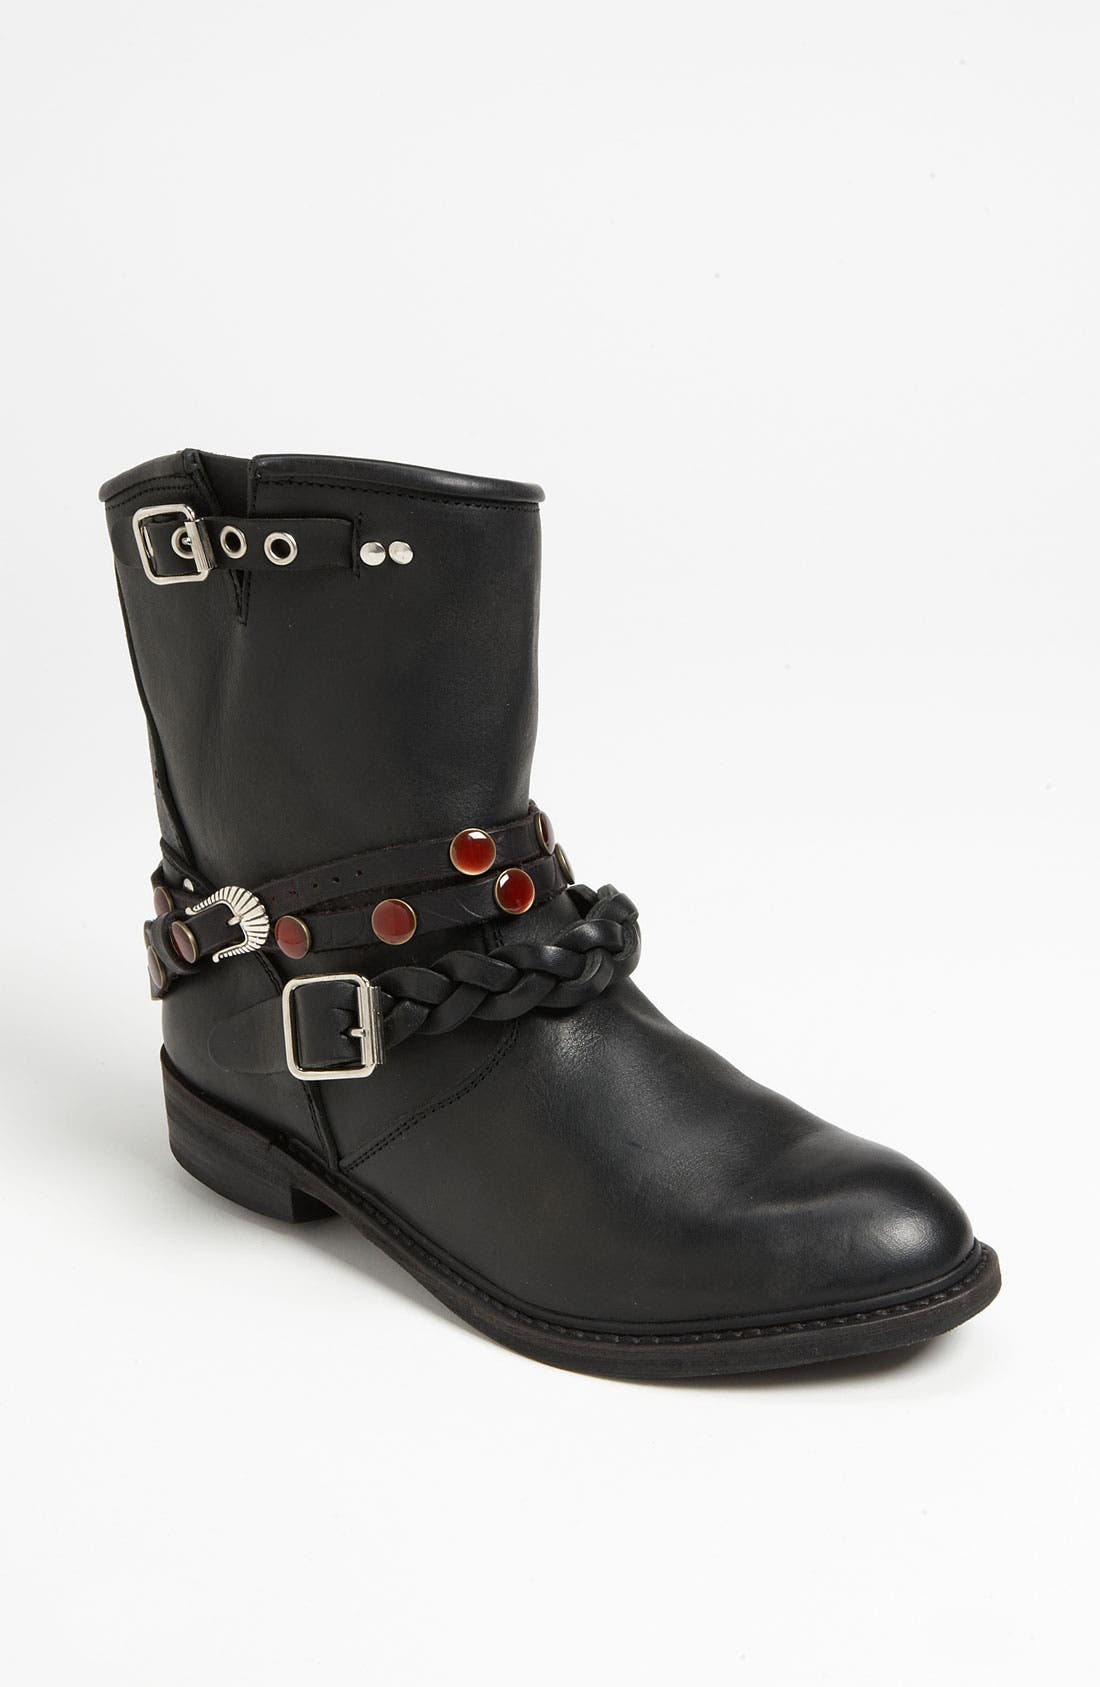 Alternate Image 1 Selected - Golden Goose Short Biker Boot